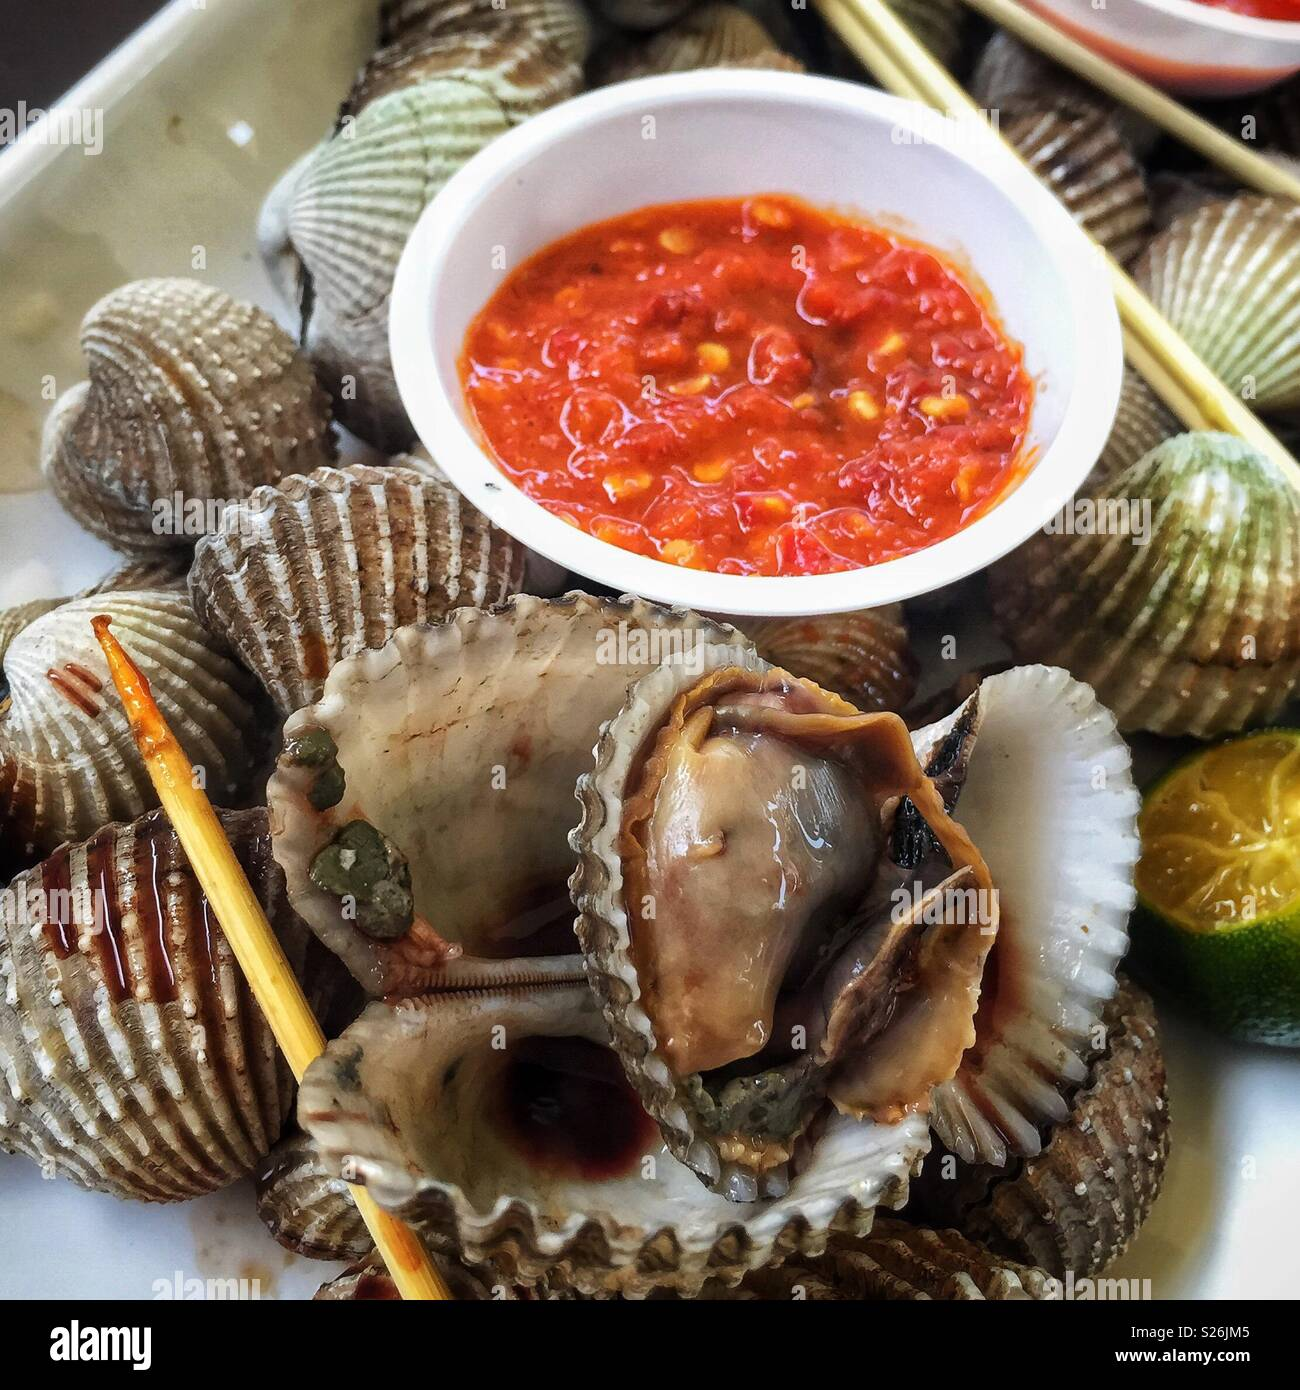 Clams and chilli sauce at East Coast Lagoon Food Village, a hawker food market in Singapore - Stock Image